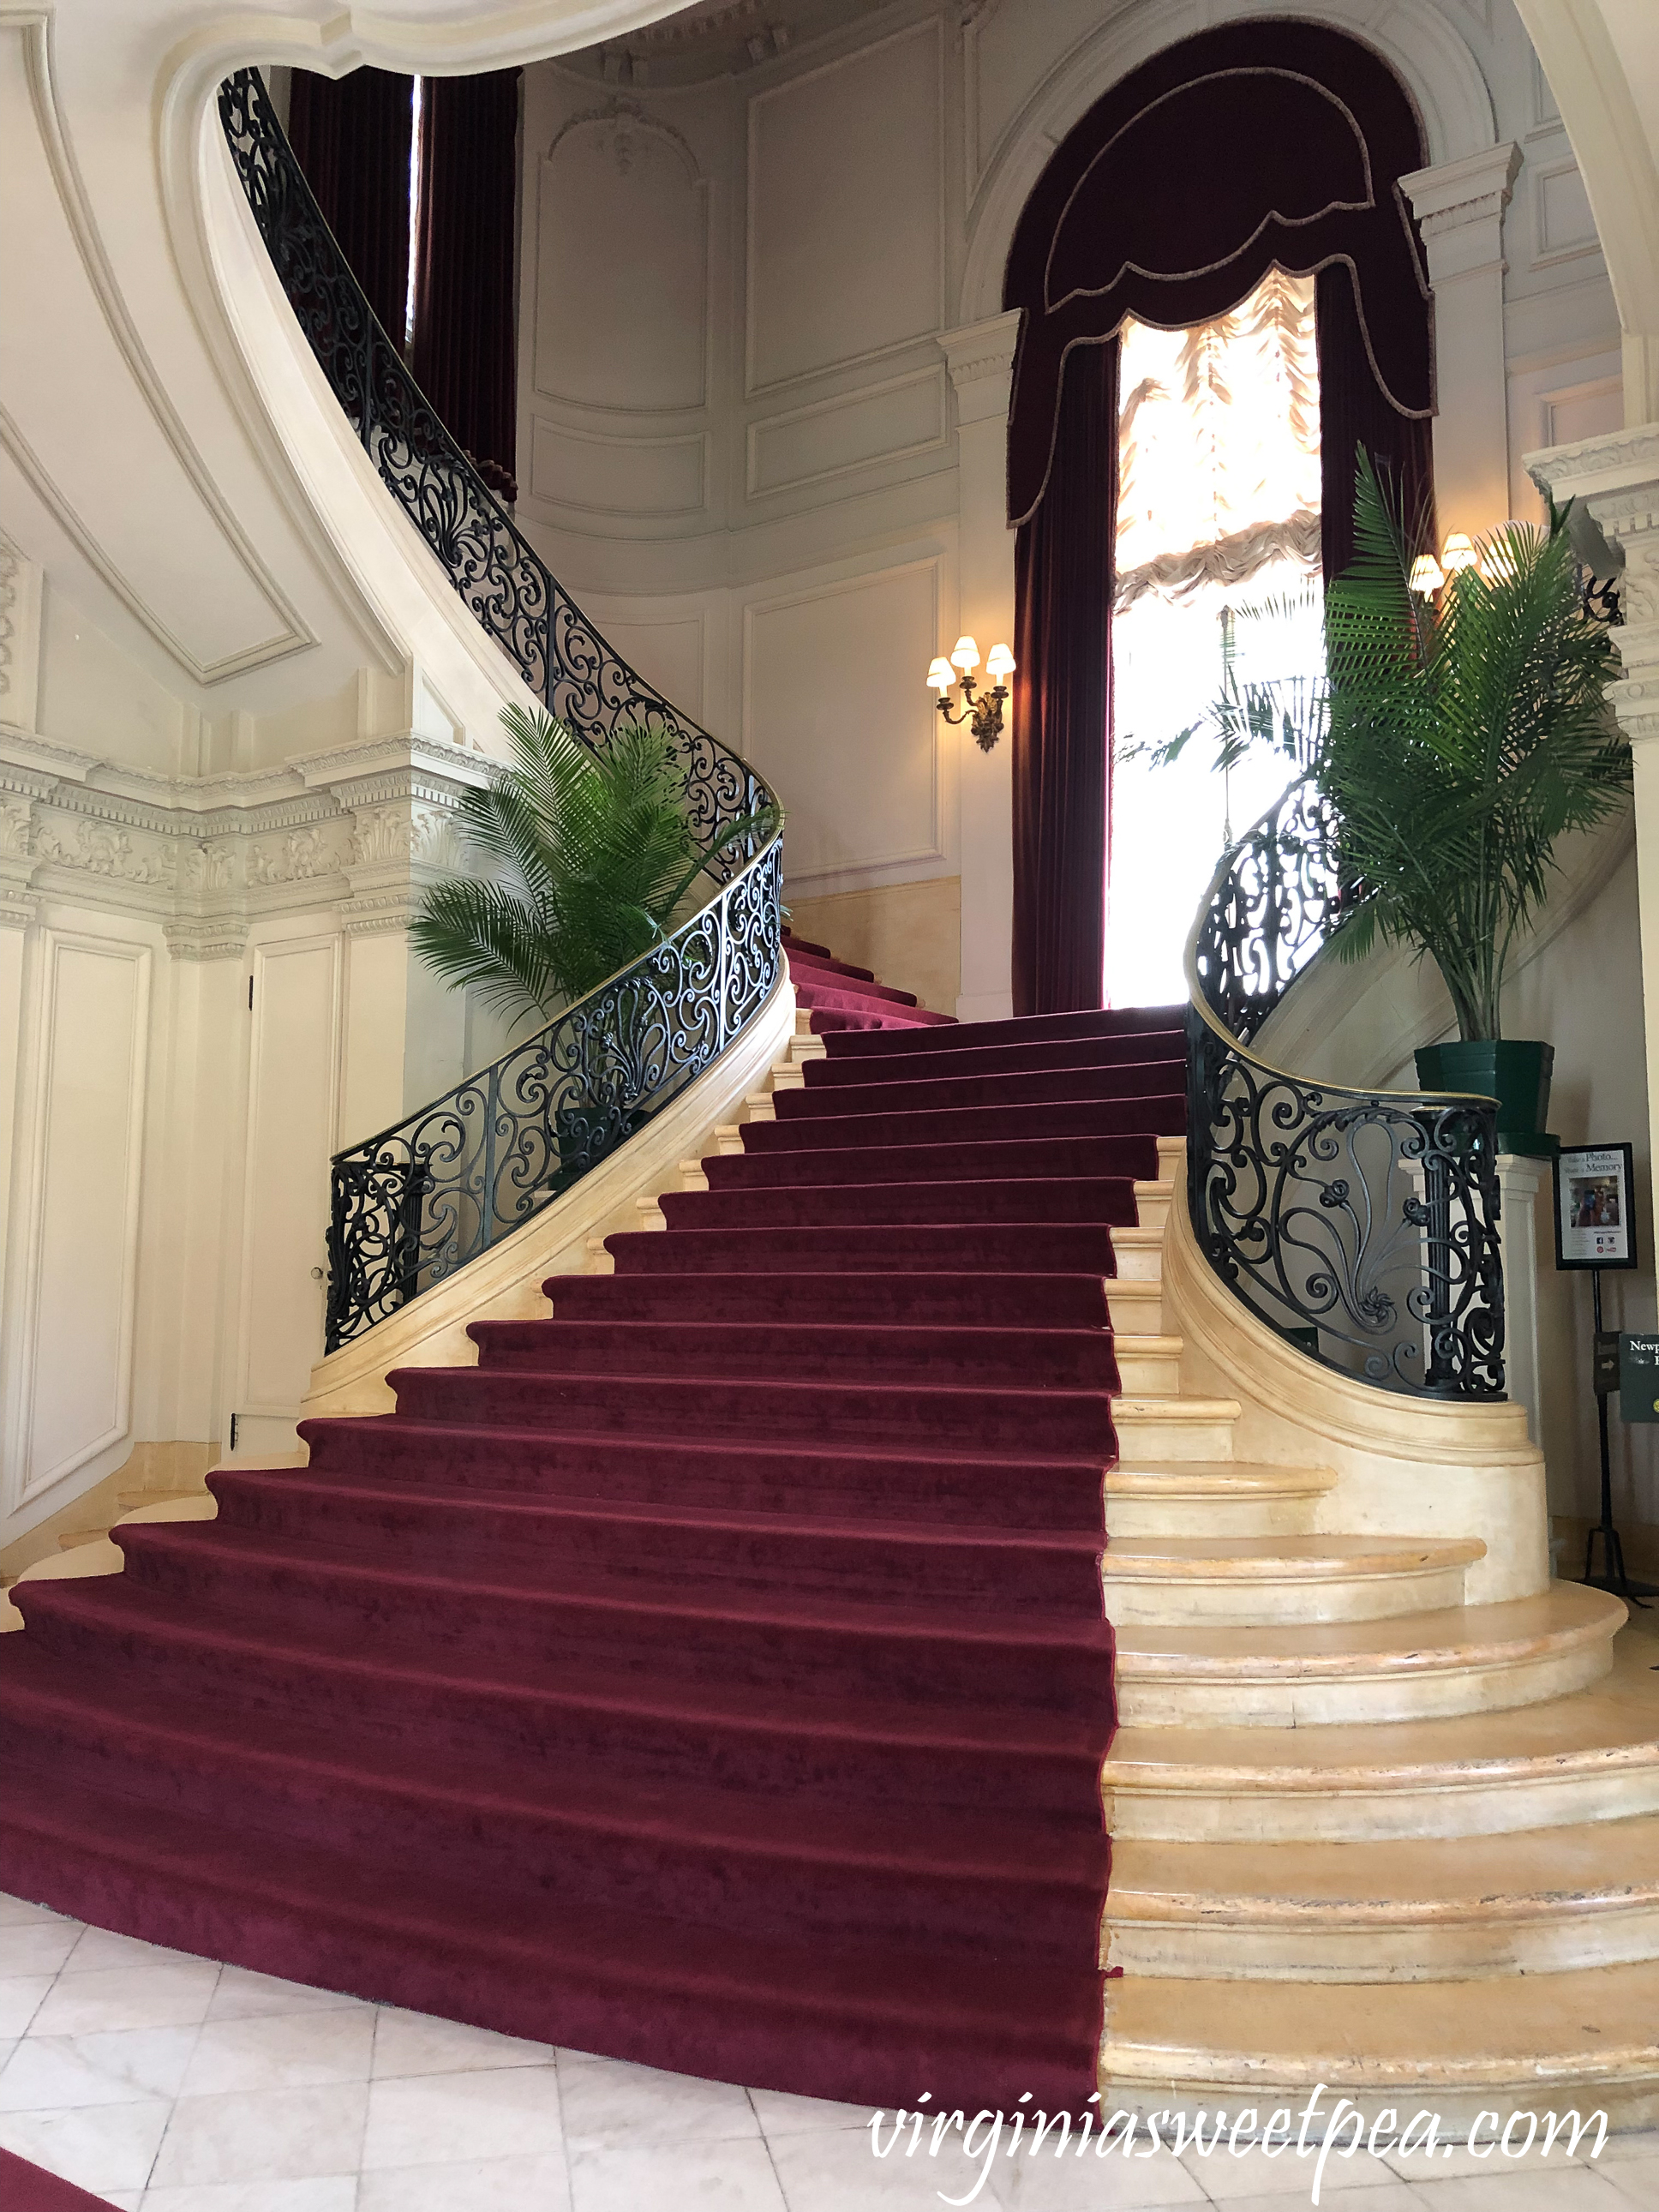 Grand Staircase at Rosecliff